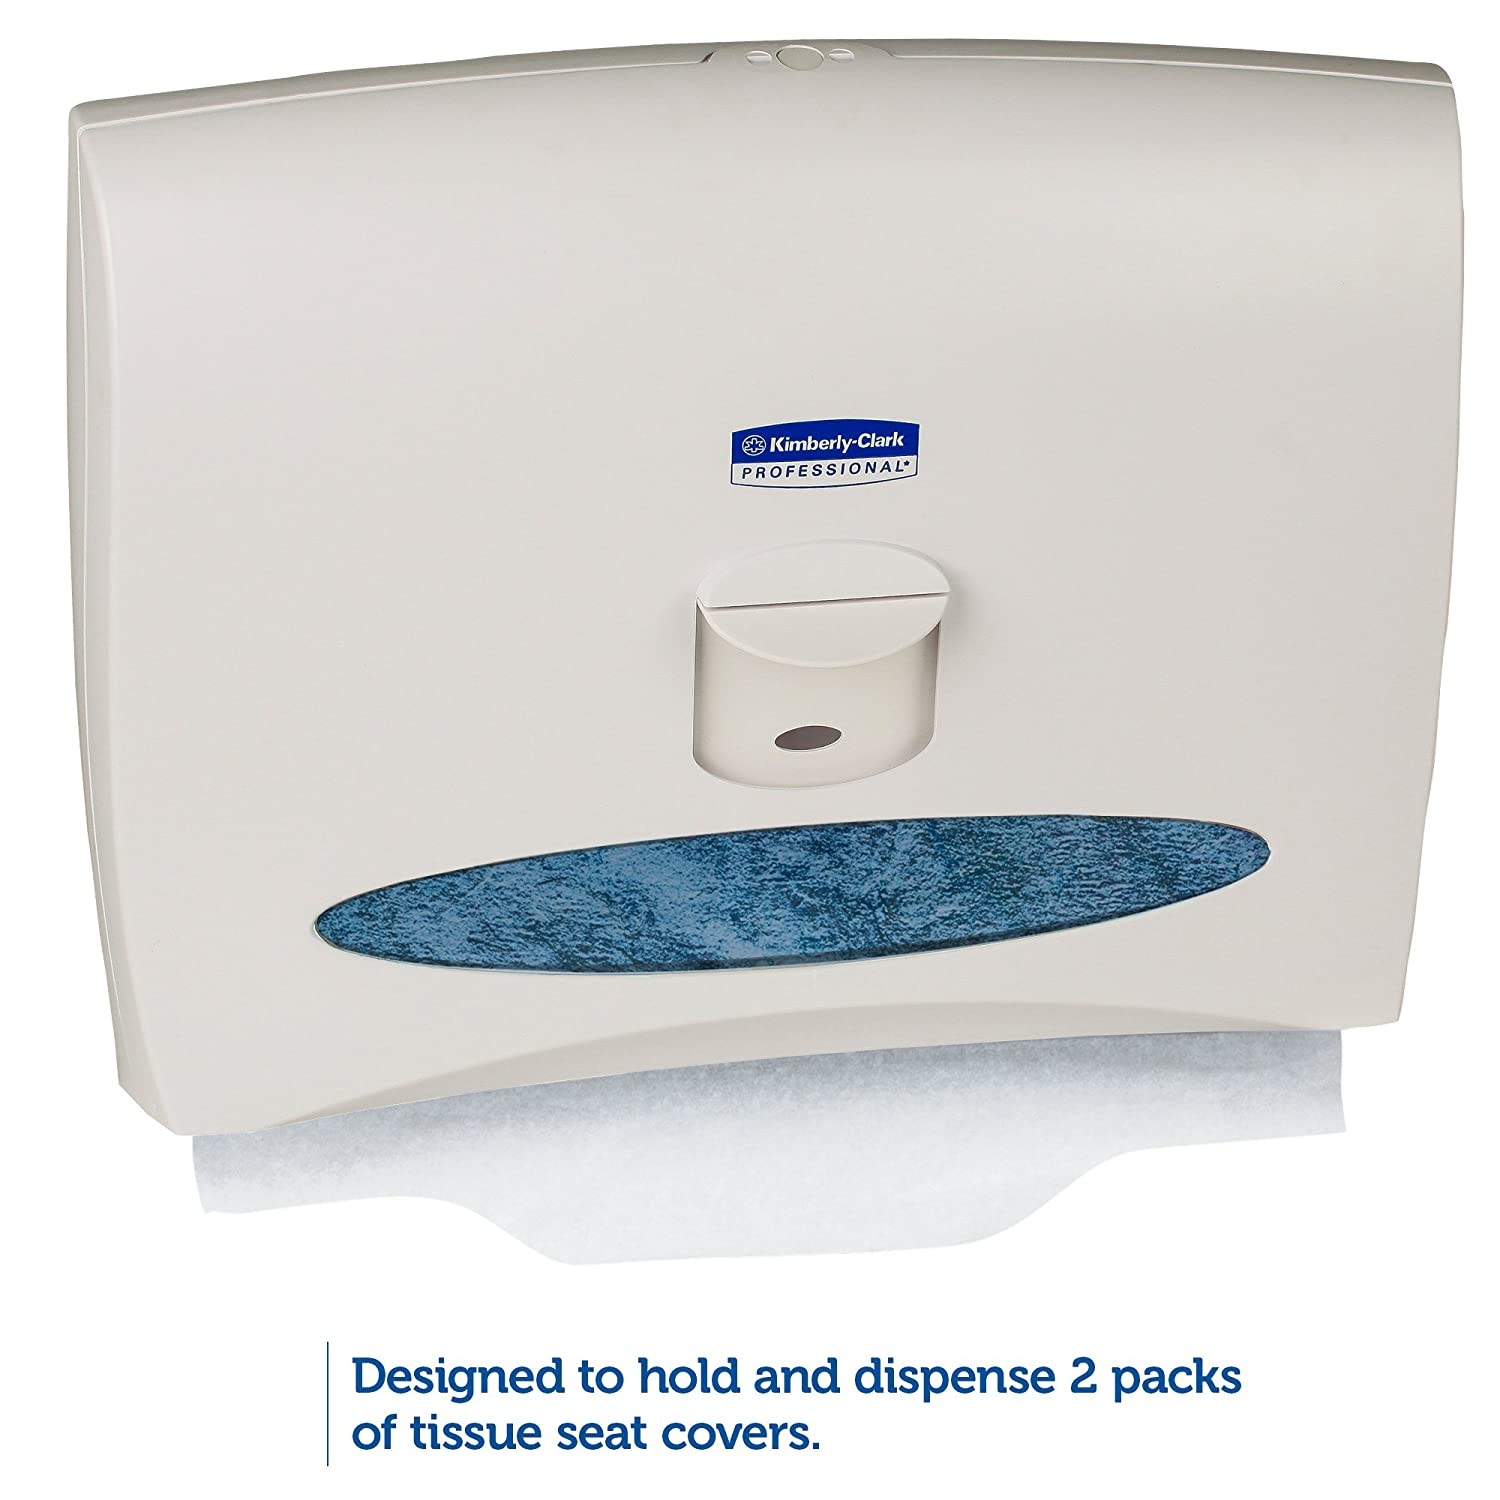 Kimberly Clark Professional 09505 Personal Seats Toilet Seat Cover Dispenser 17 1 2 X 4 13 White Amazon Industrial Scientific